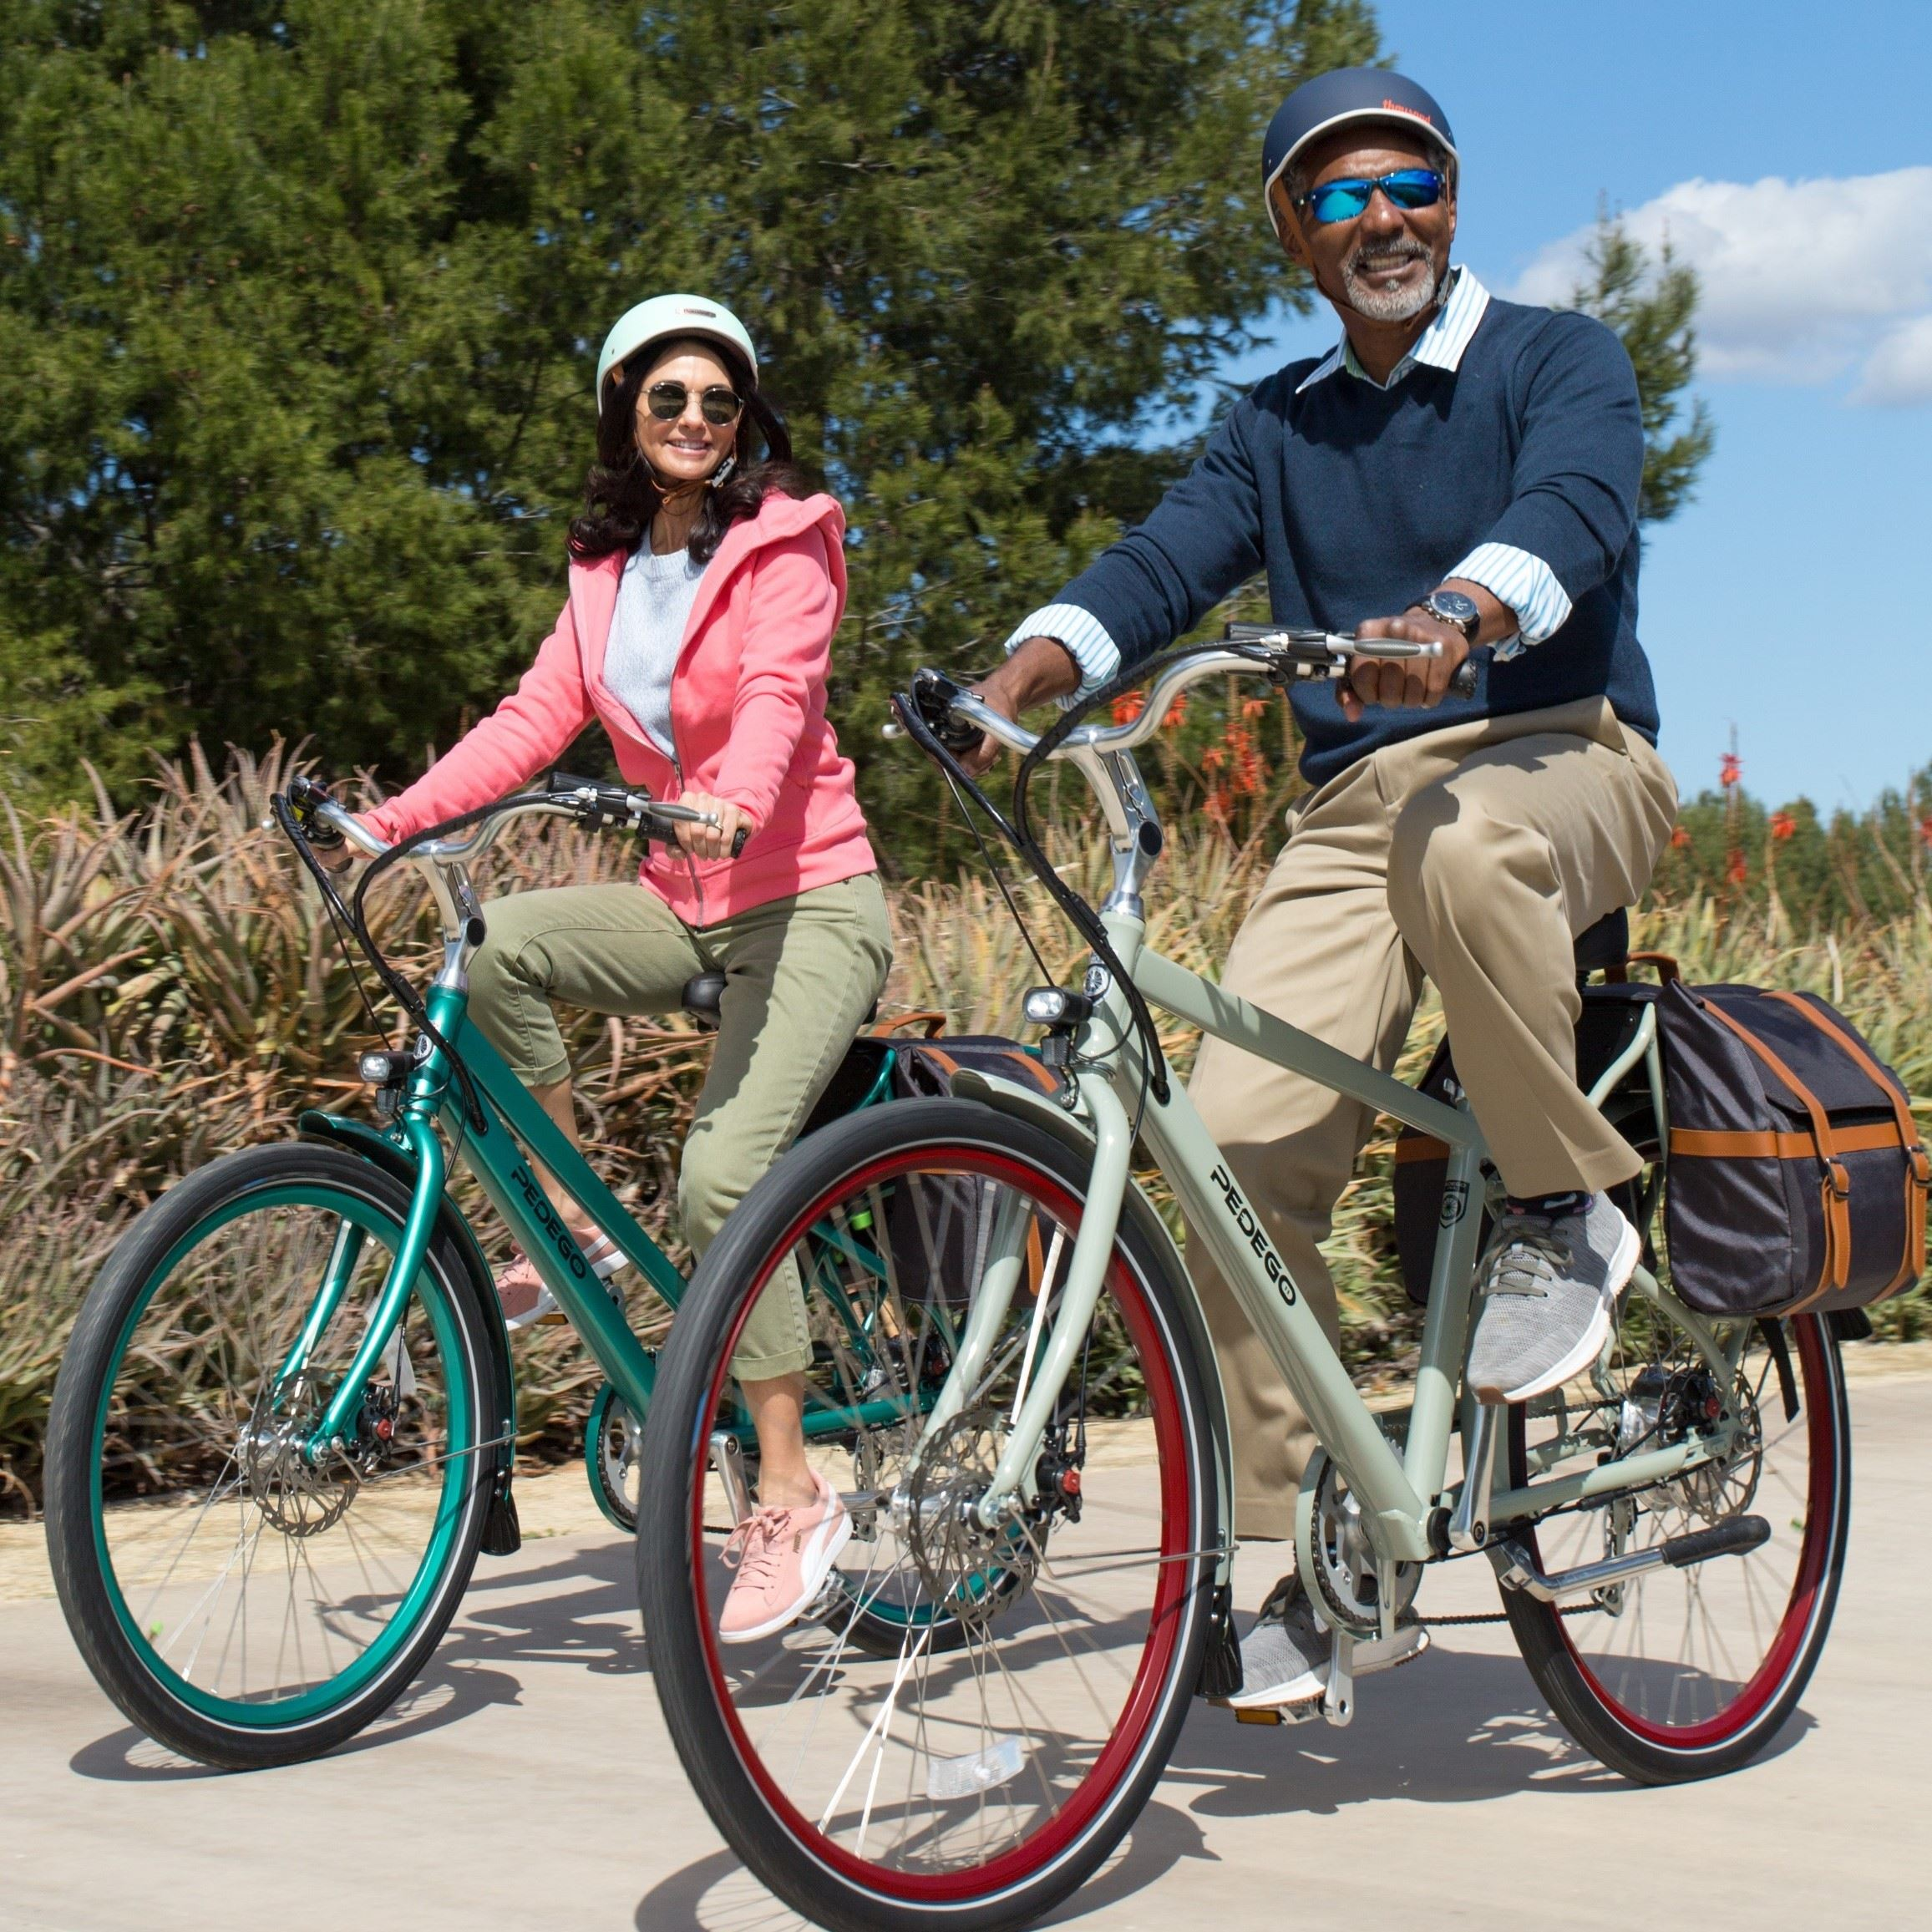 A man and a woman riding electric bicycles